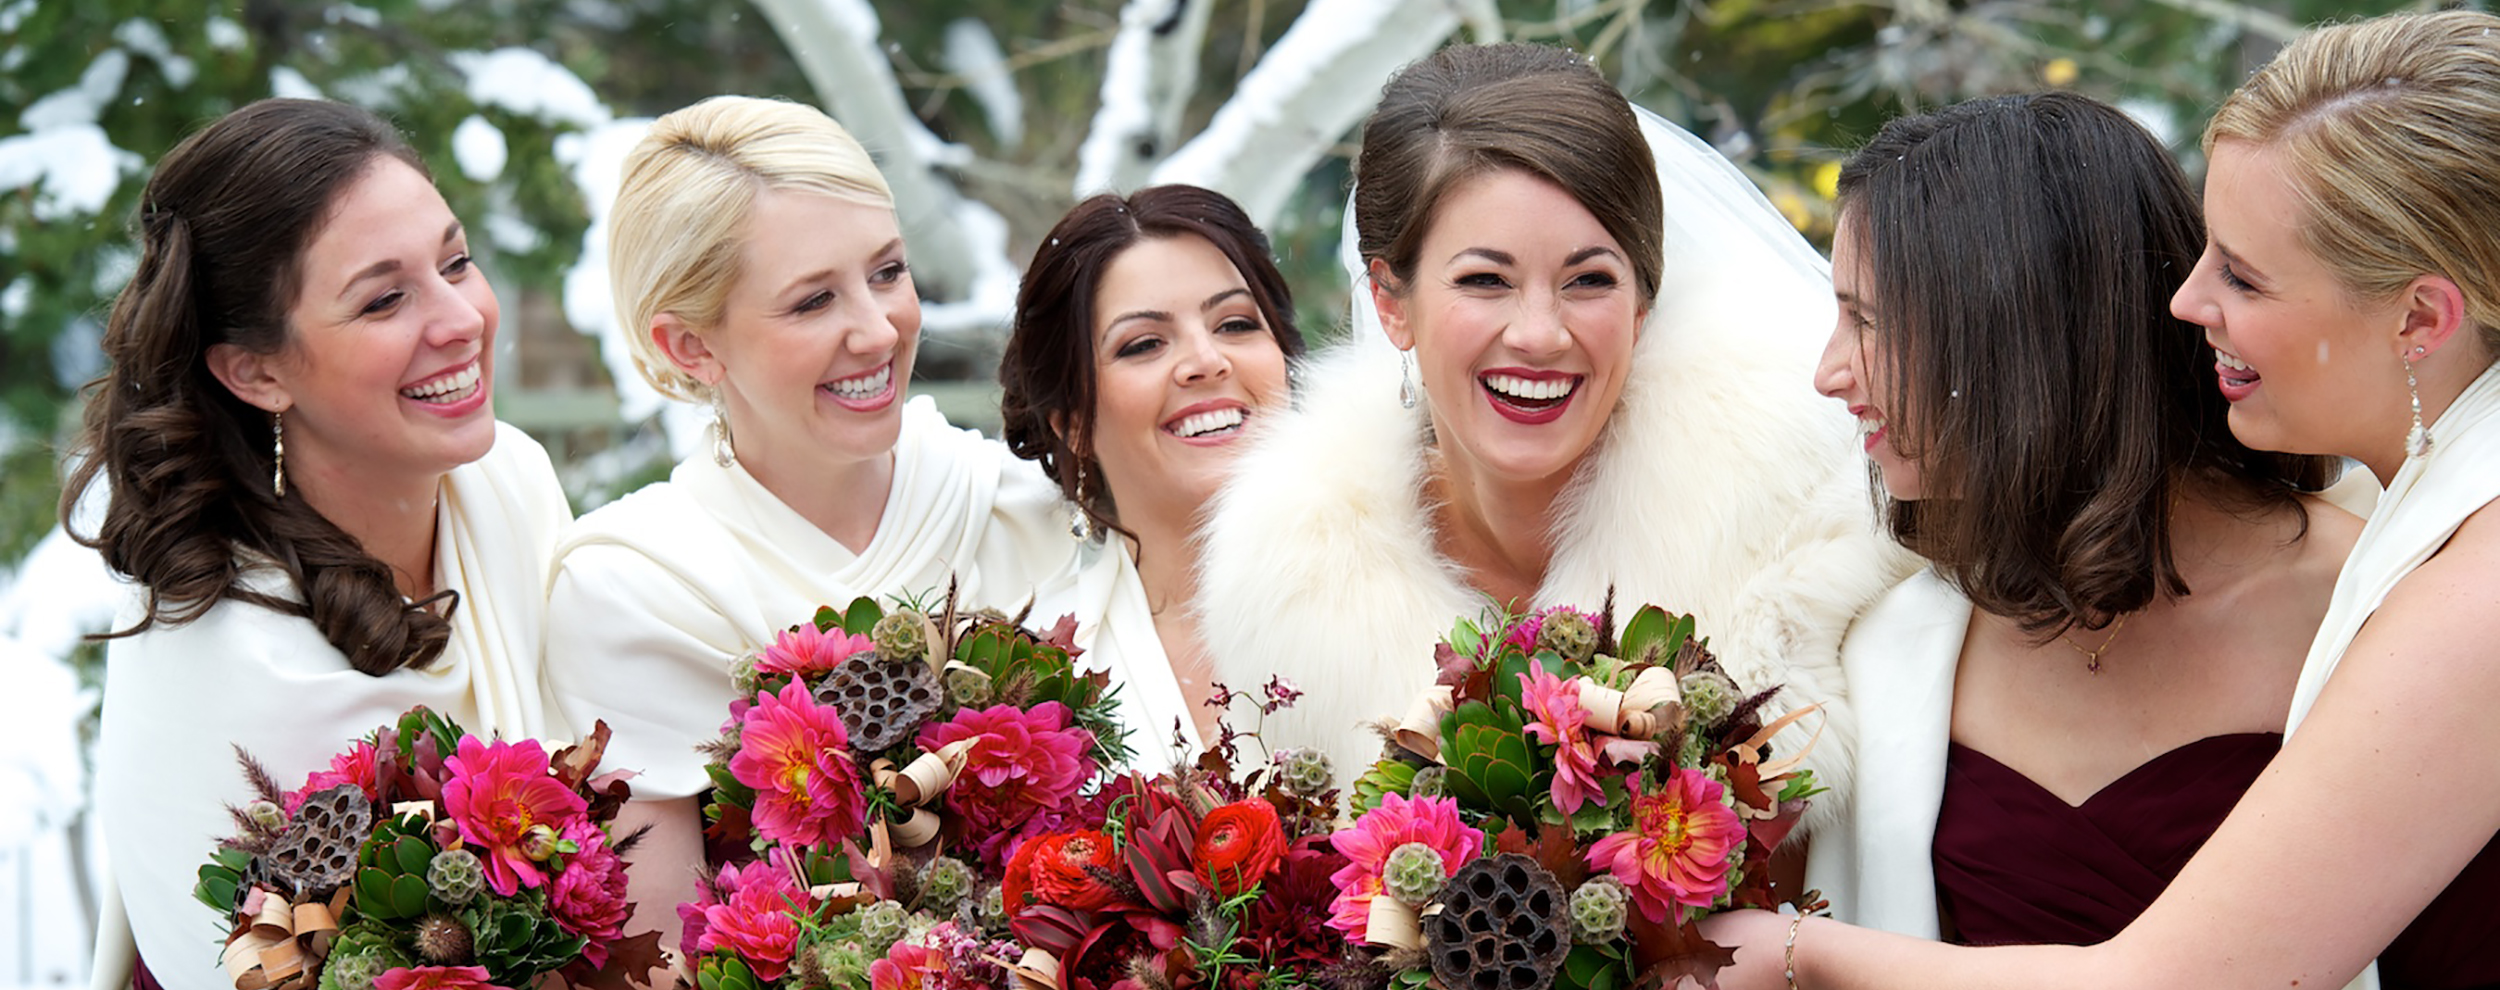 The Decorated Bride - Services.jpg